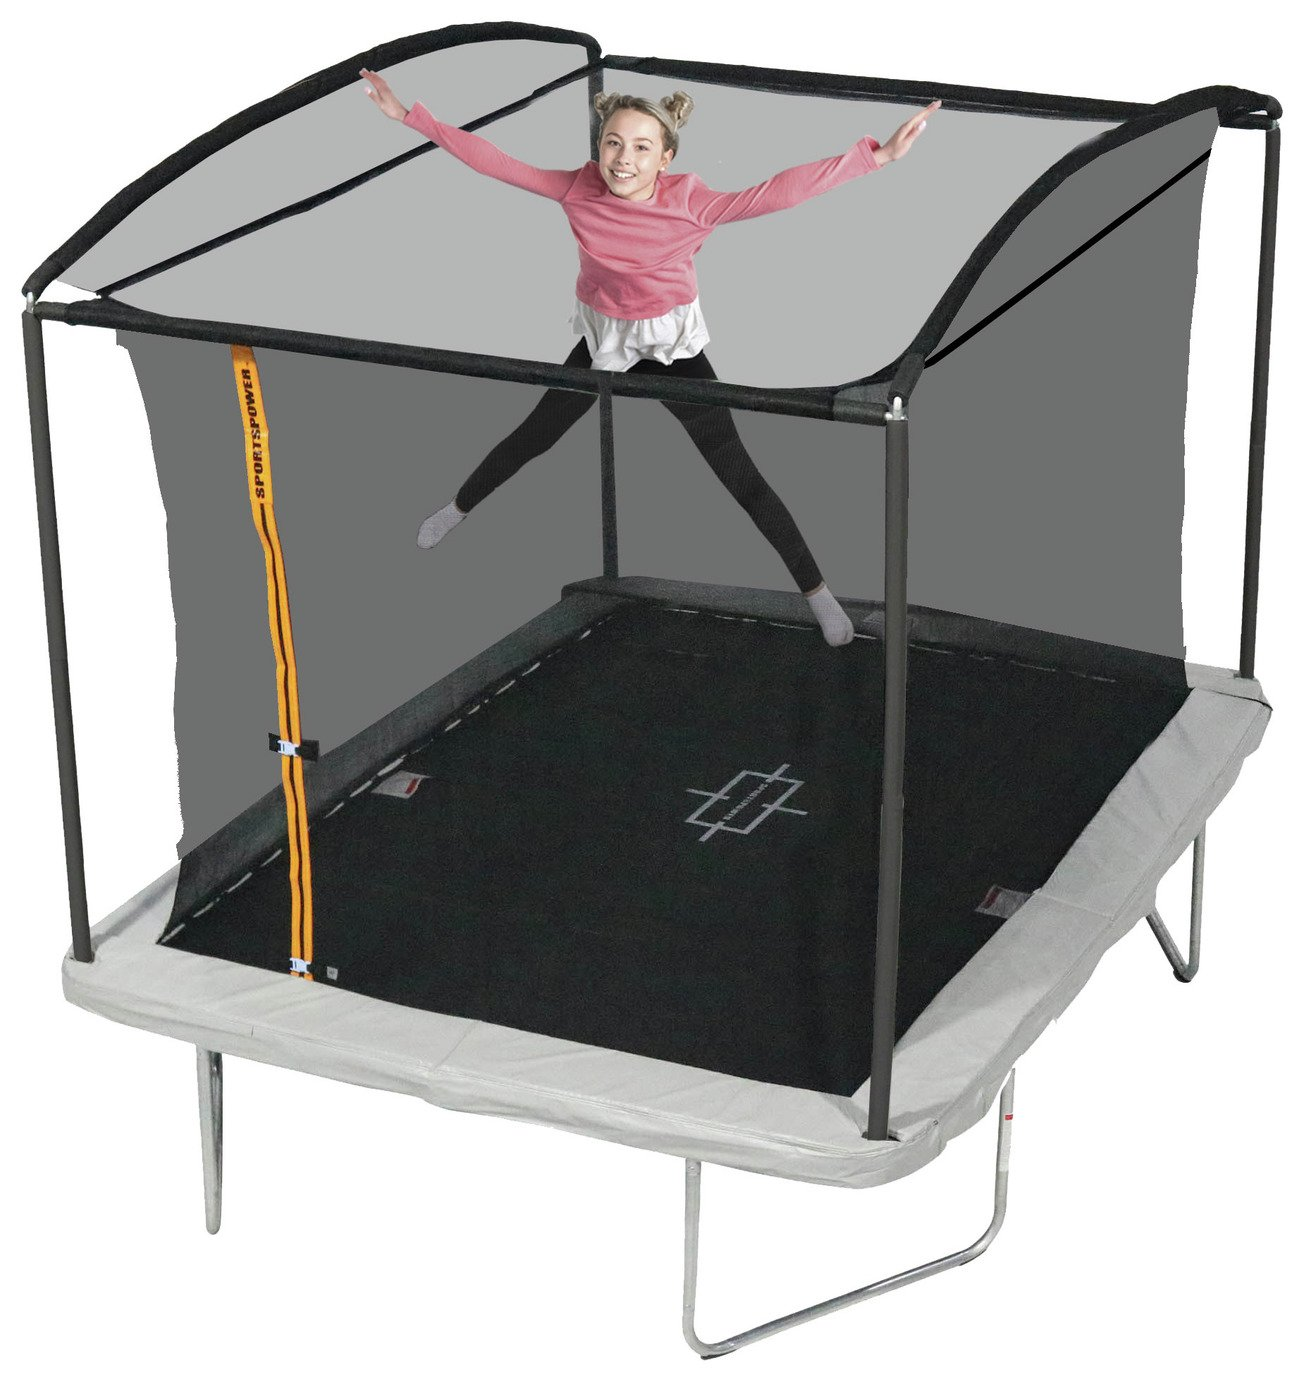 sportspower 10ft x 8ft rectangular trampoline and enclosure.